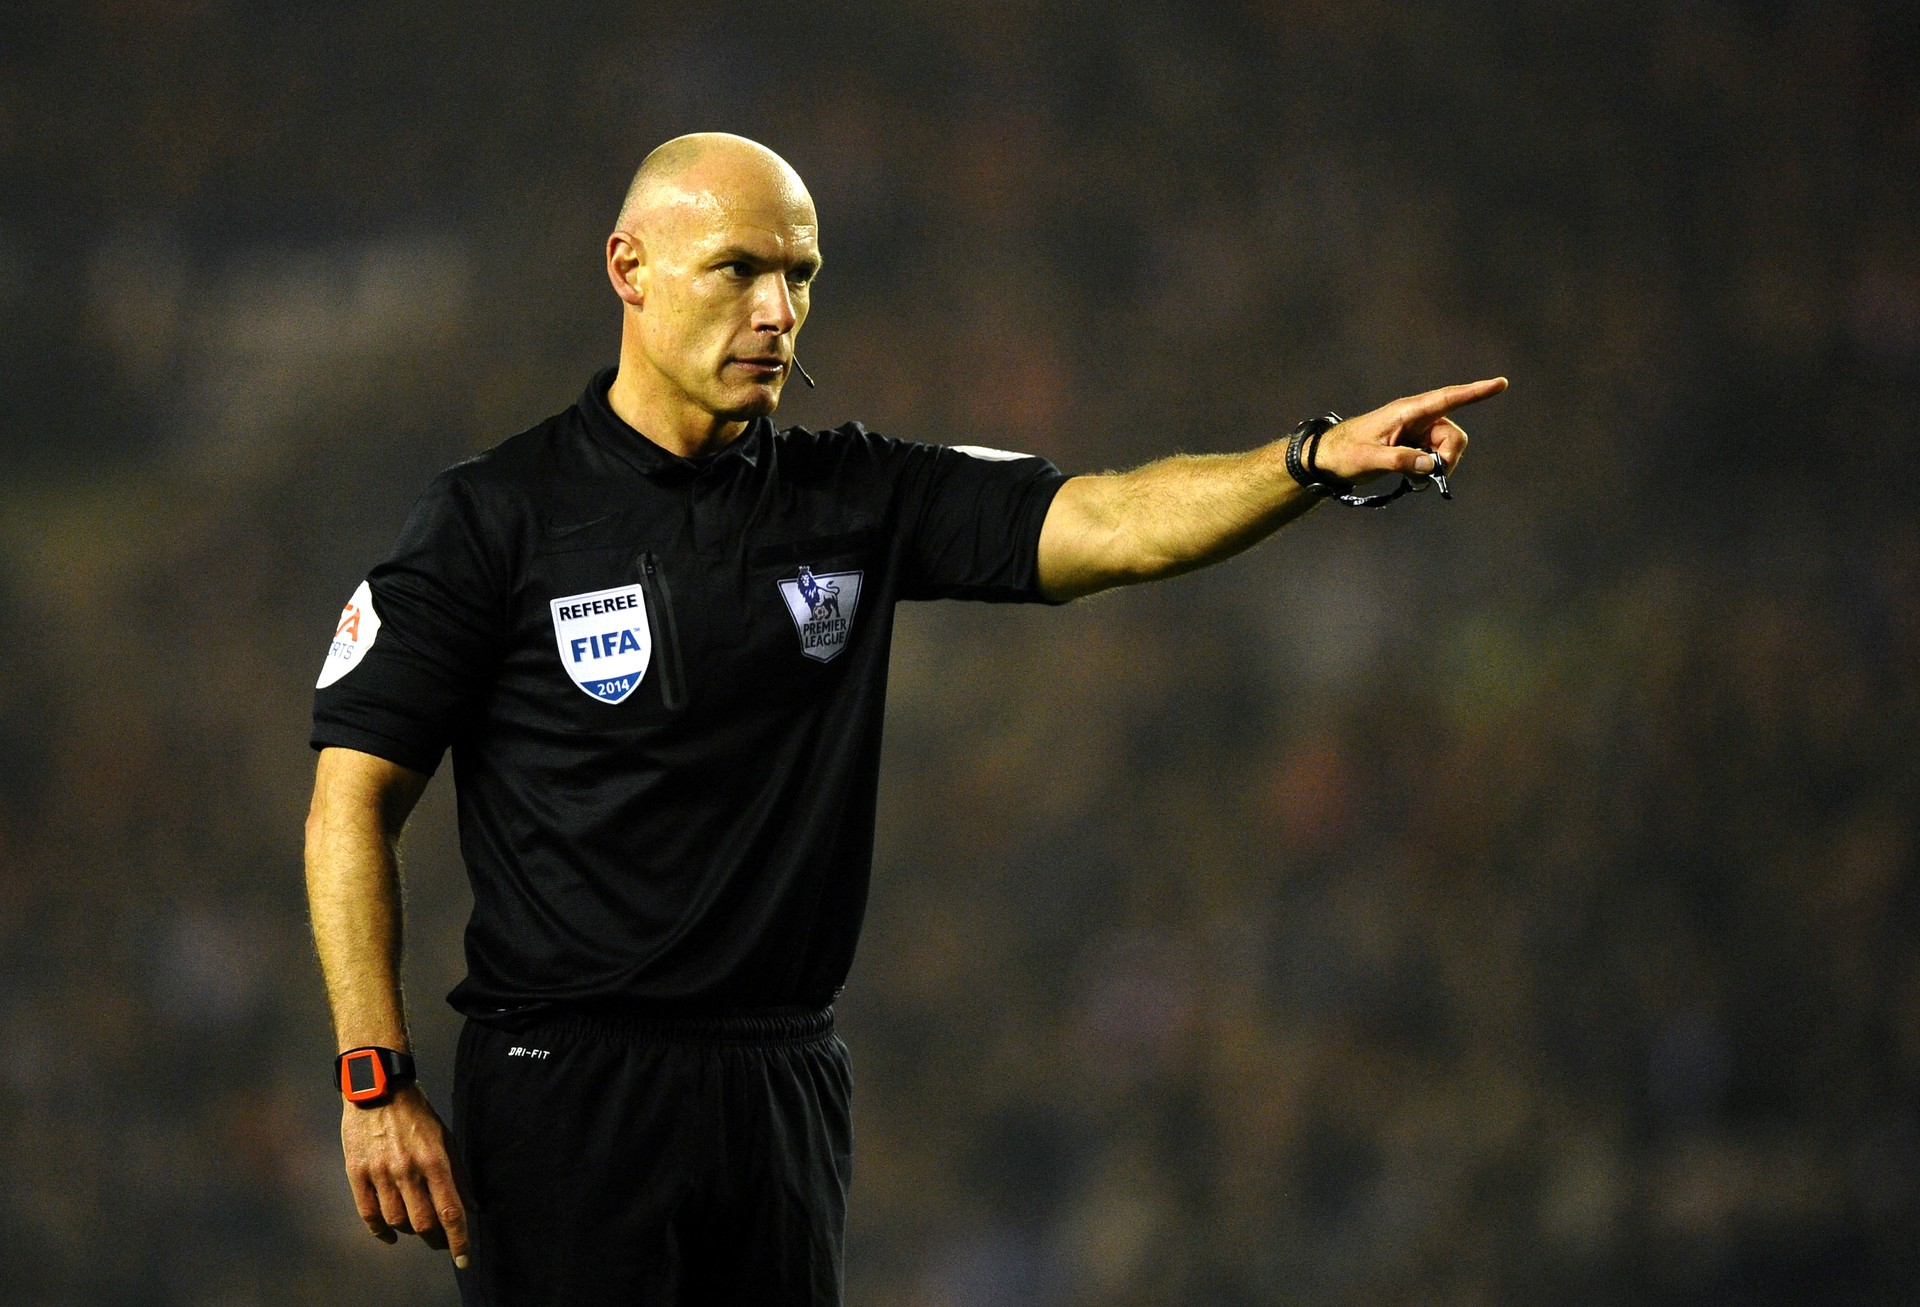 Howard Webb estará na Copa do Mundo no Brasil (Foto: Getty Images)